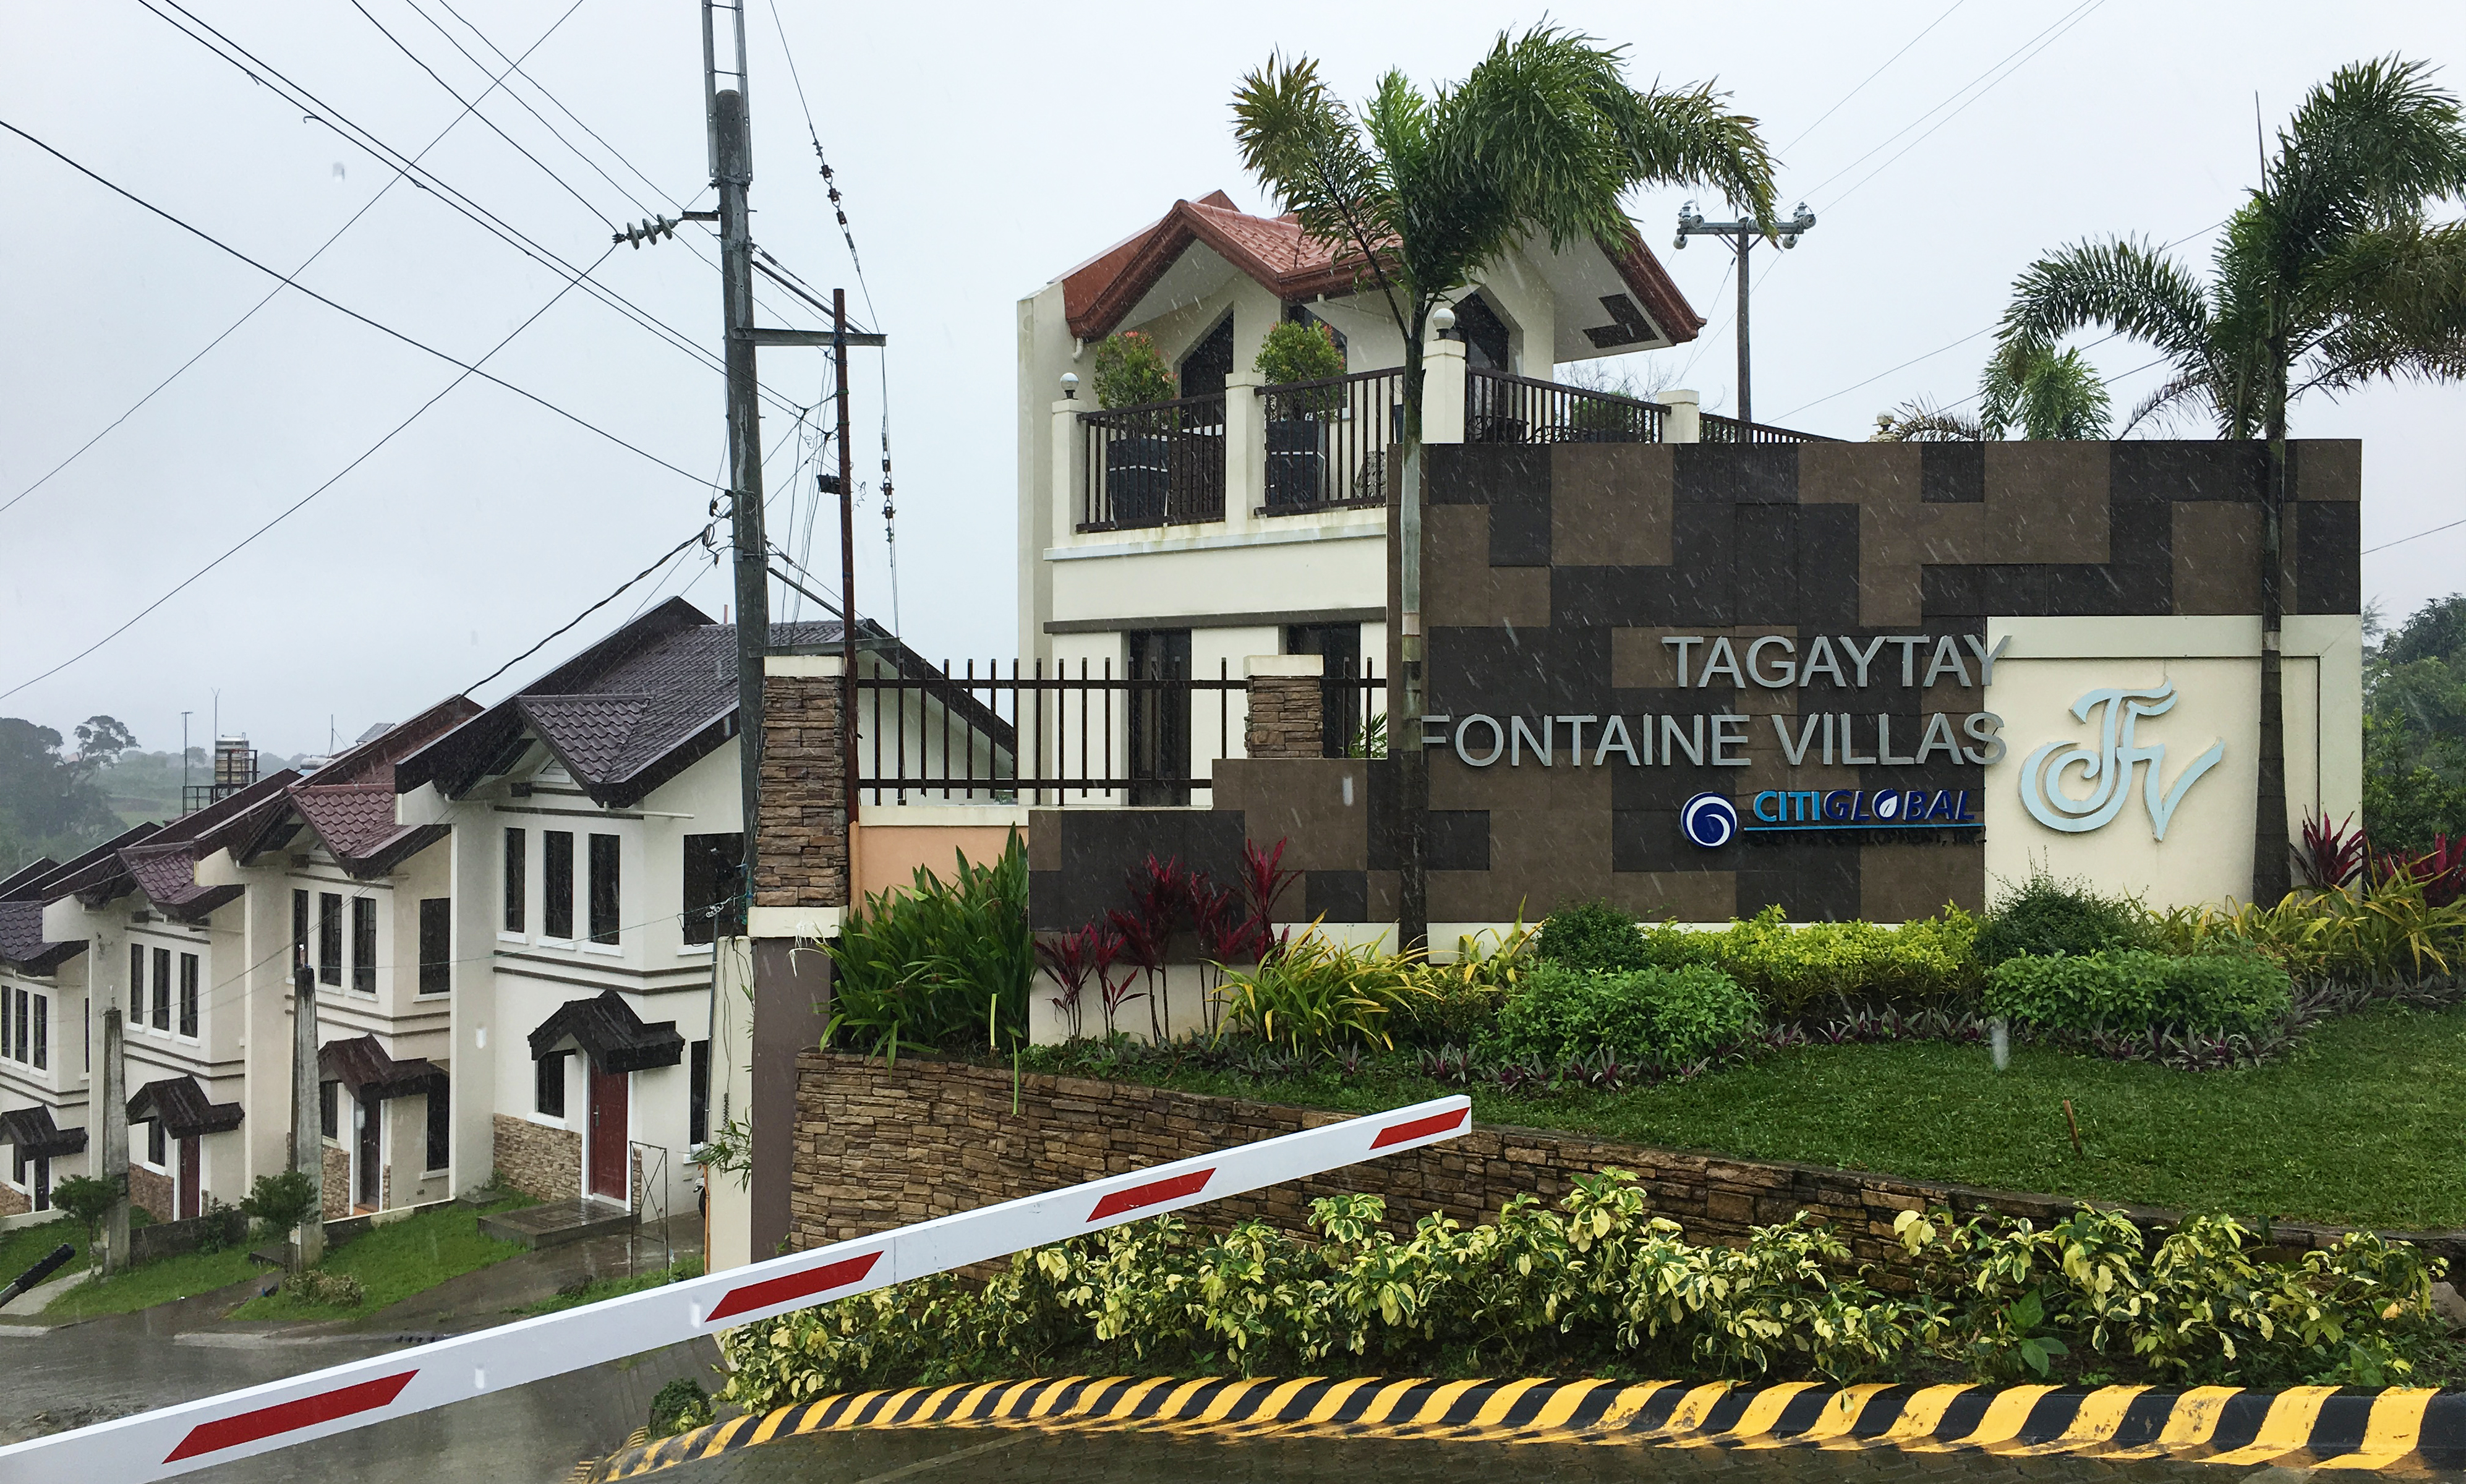 Entrance of Tagaytay Fontaine Villas